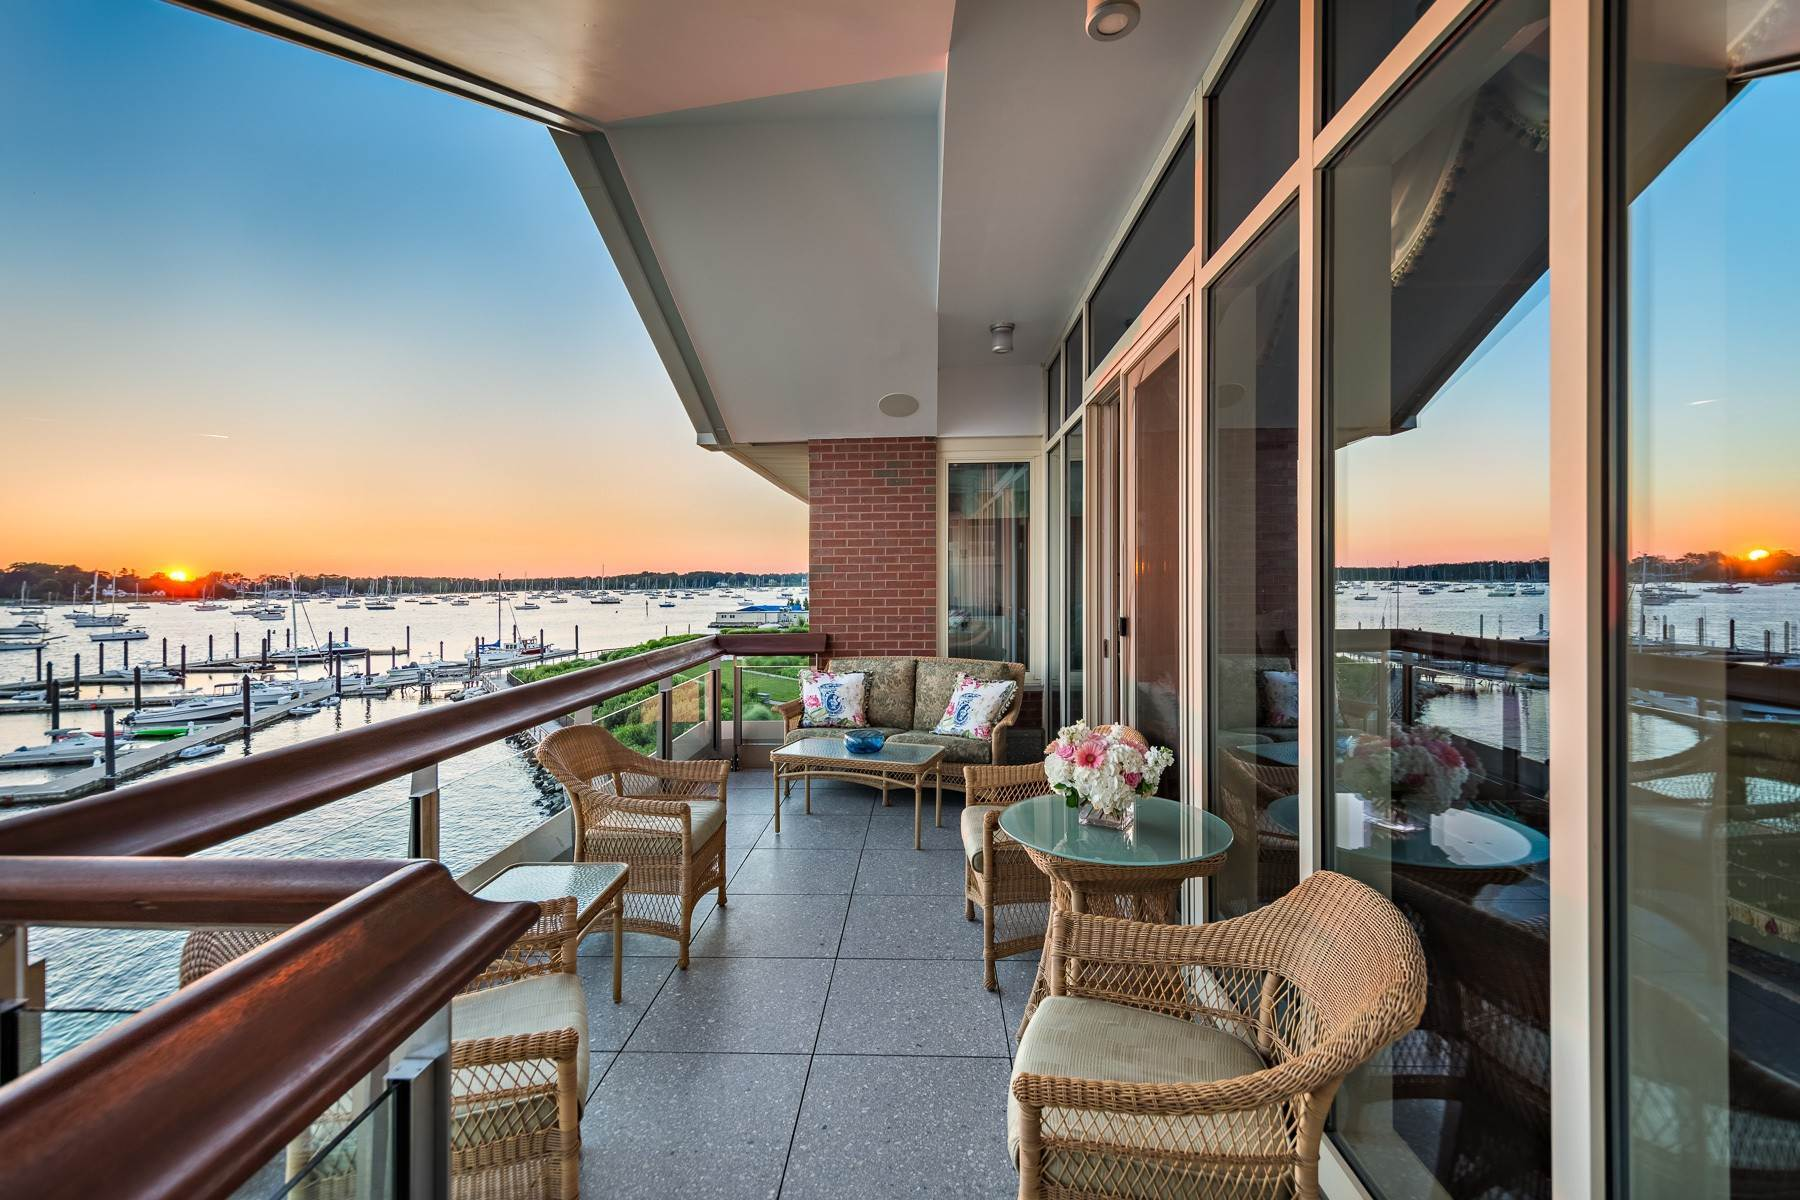 9. Condominiums for Sale at 341 THAMES ST, UNIT#303S, 303S Bristol, Rhode Island 02809 United States